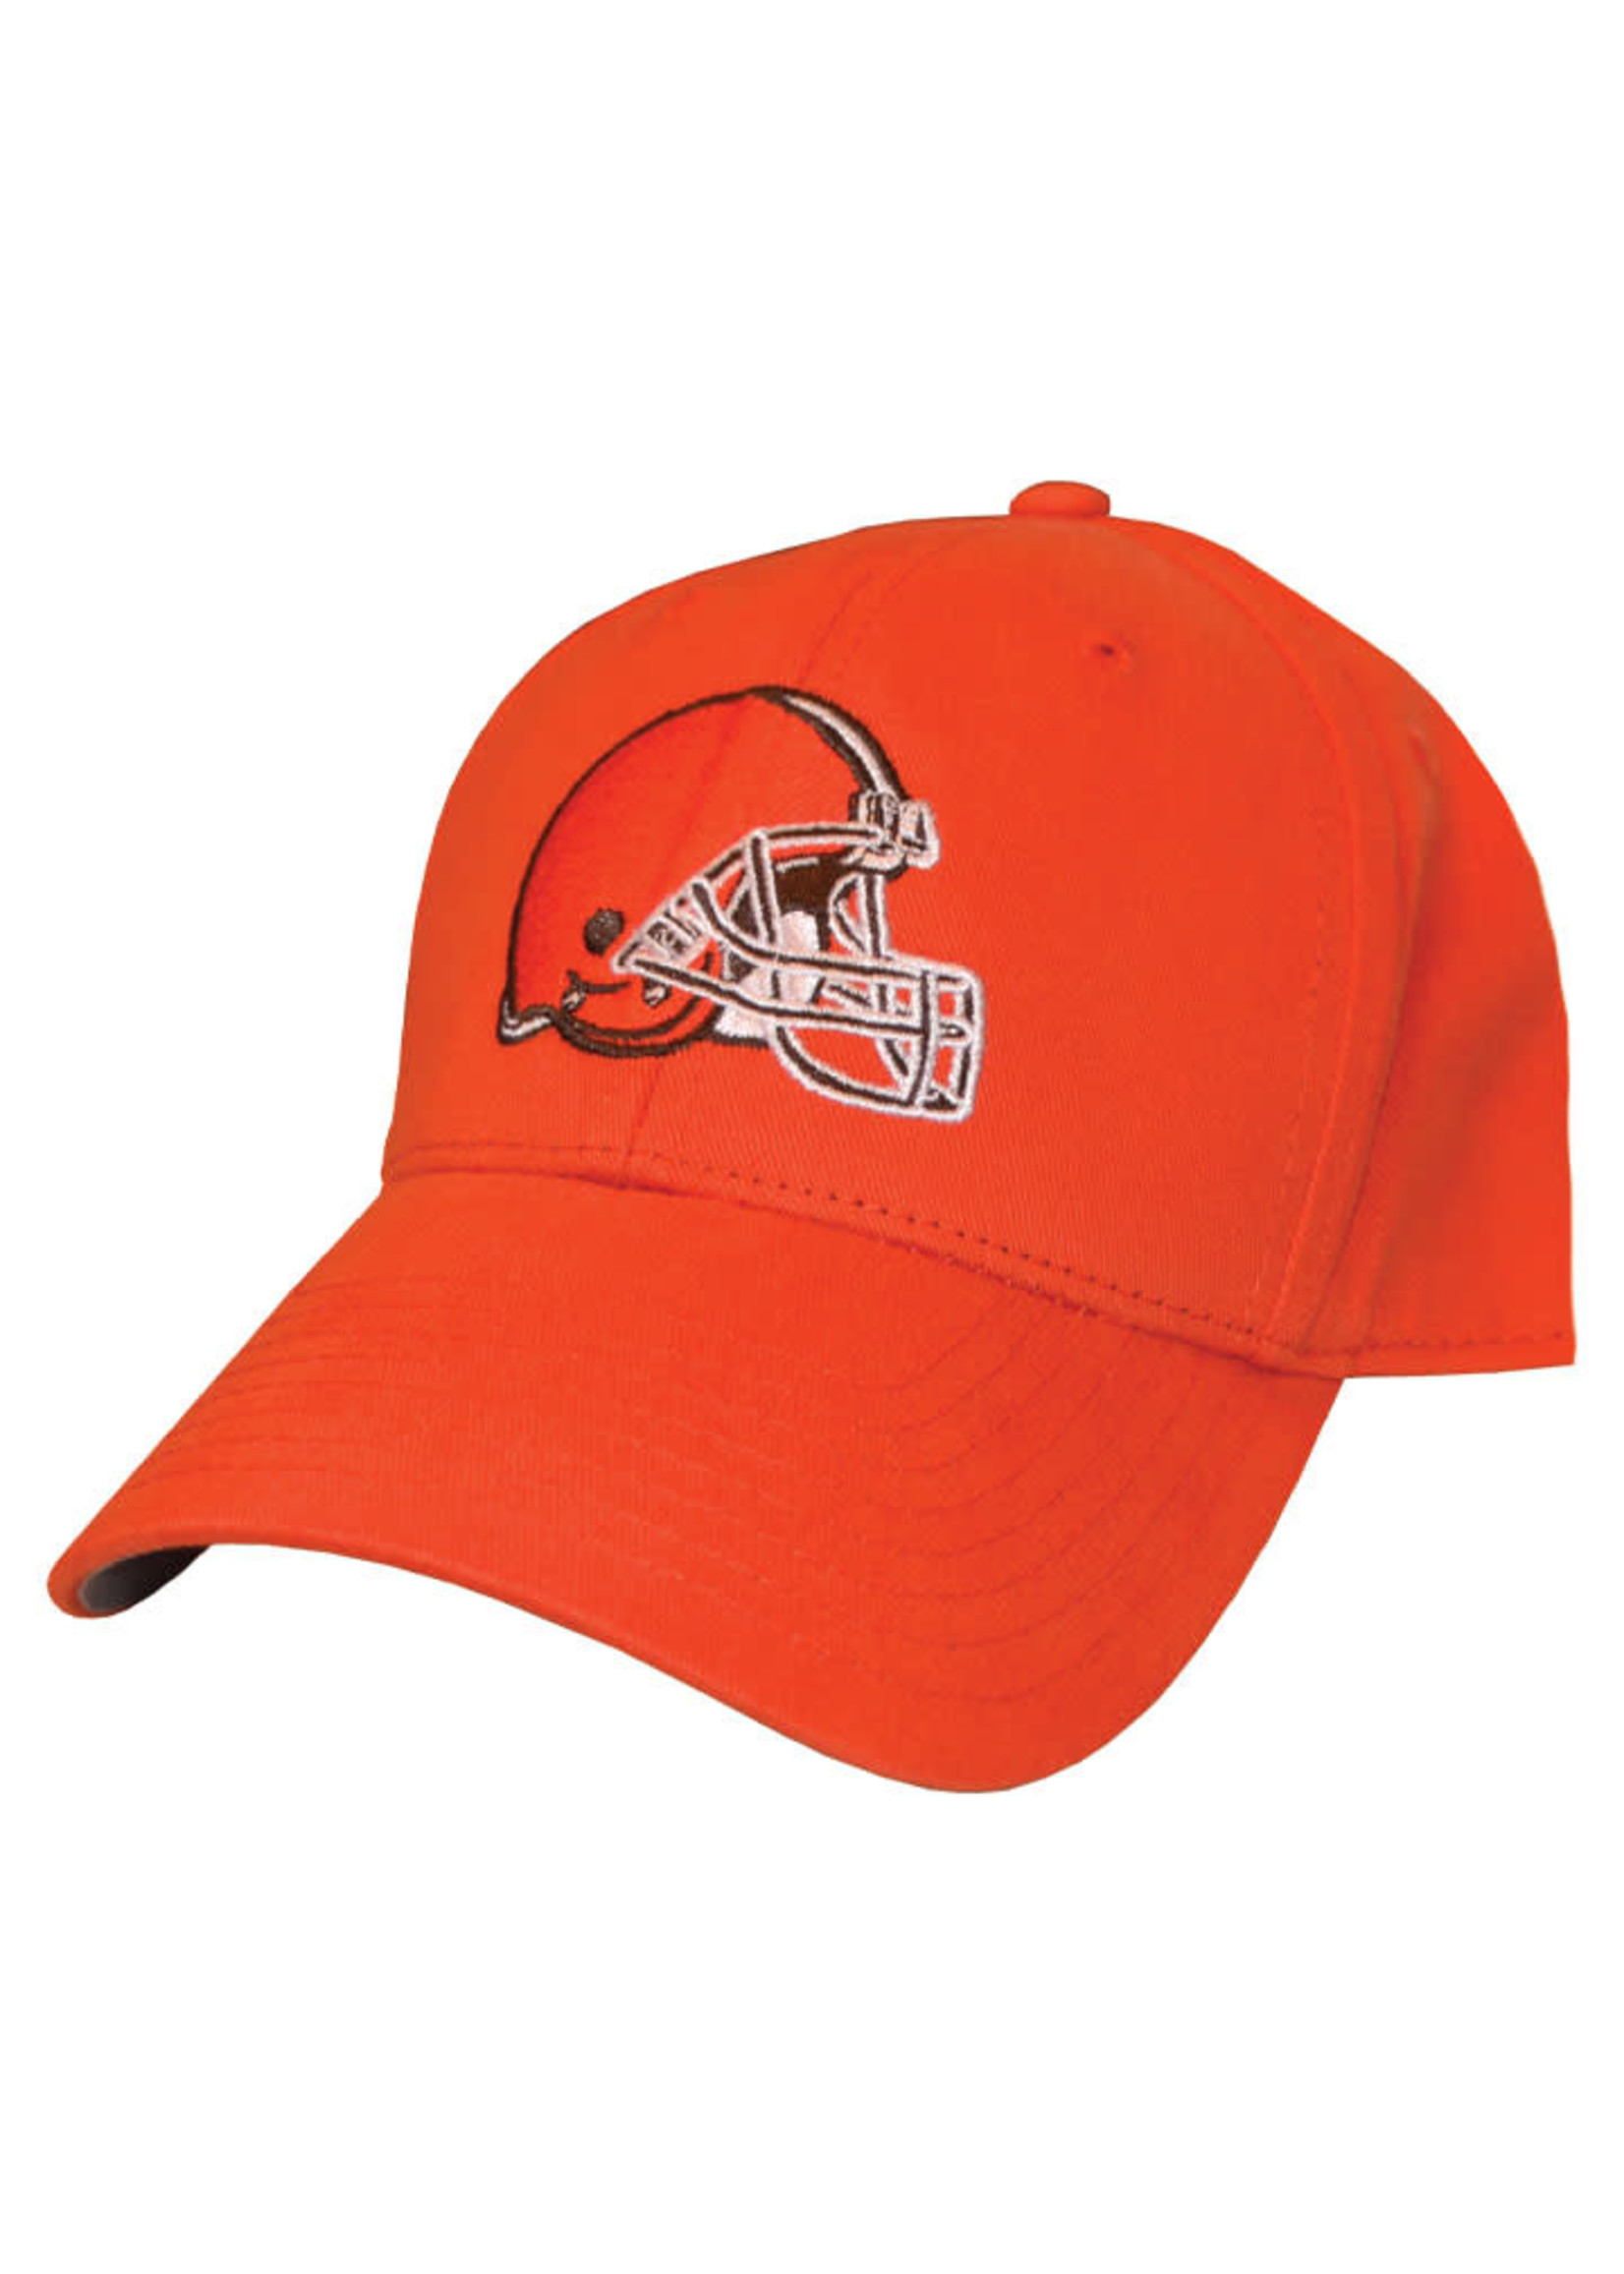 Cleveland Browns Orange Adjustable Hat